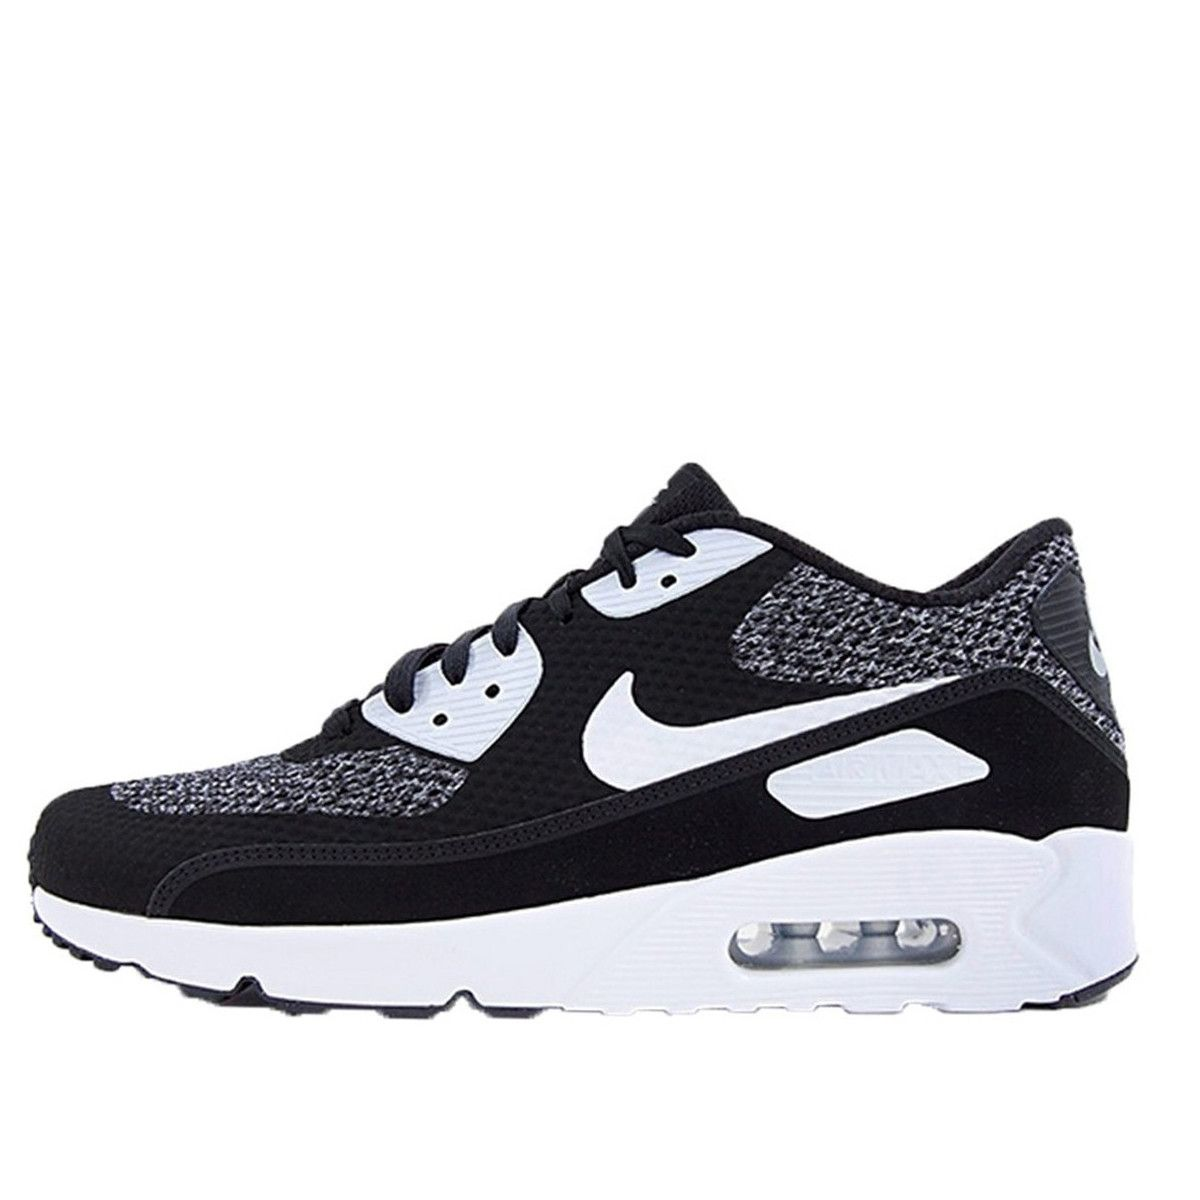 reputable site d7a62 6ee50 Basket Nike AIR MAX 90 ULTRA 2.0 ESSENTIAL - Ref. 875695-019. Loading zoom